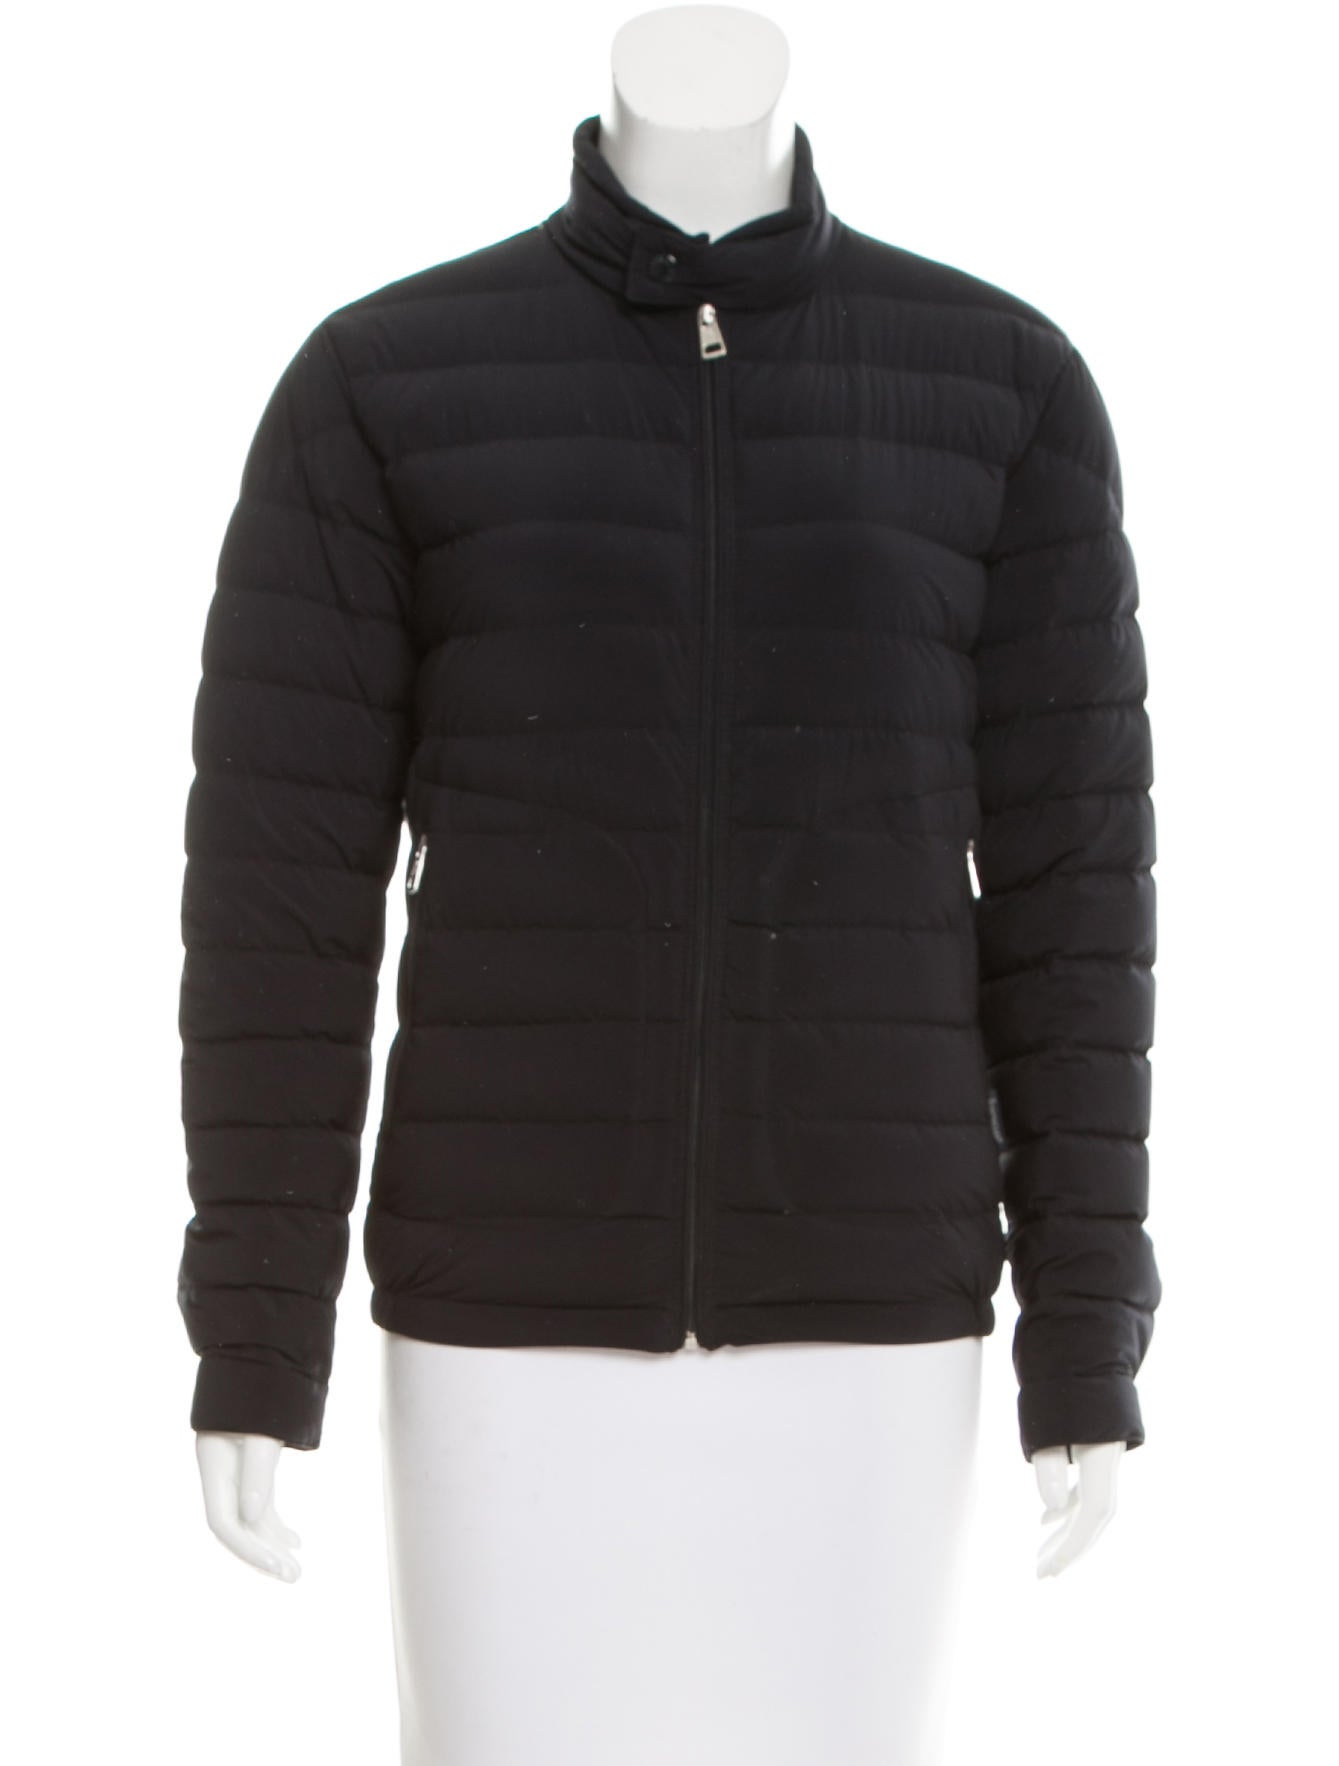 9c16573f42f Moncler Doudoune Elastique Down Jacket - Clothing - MOC24621